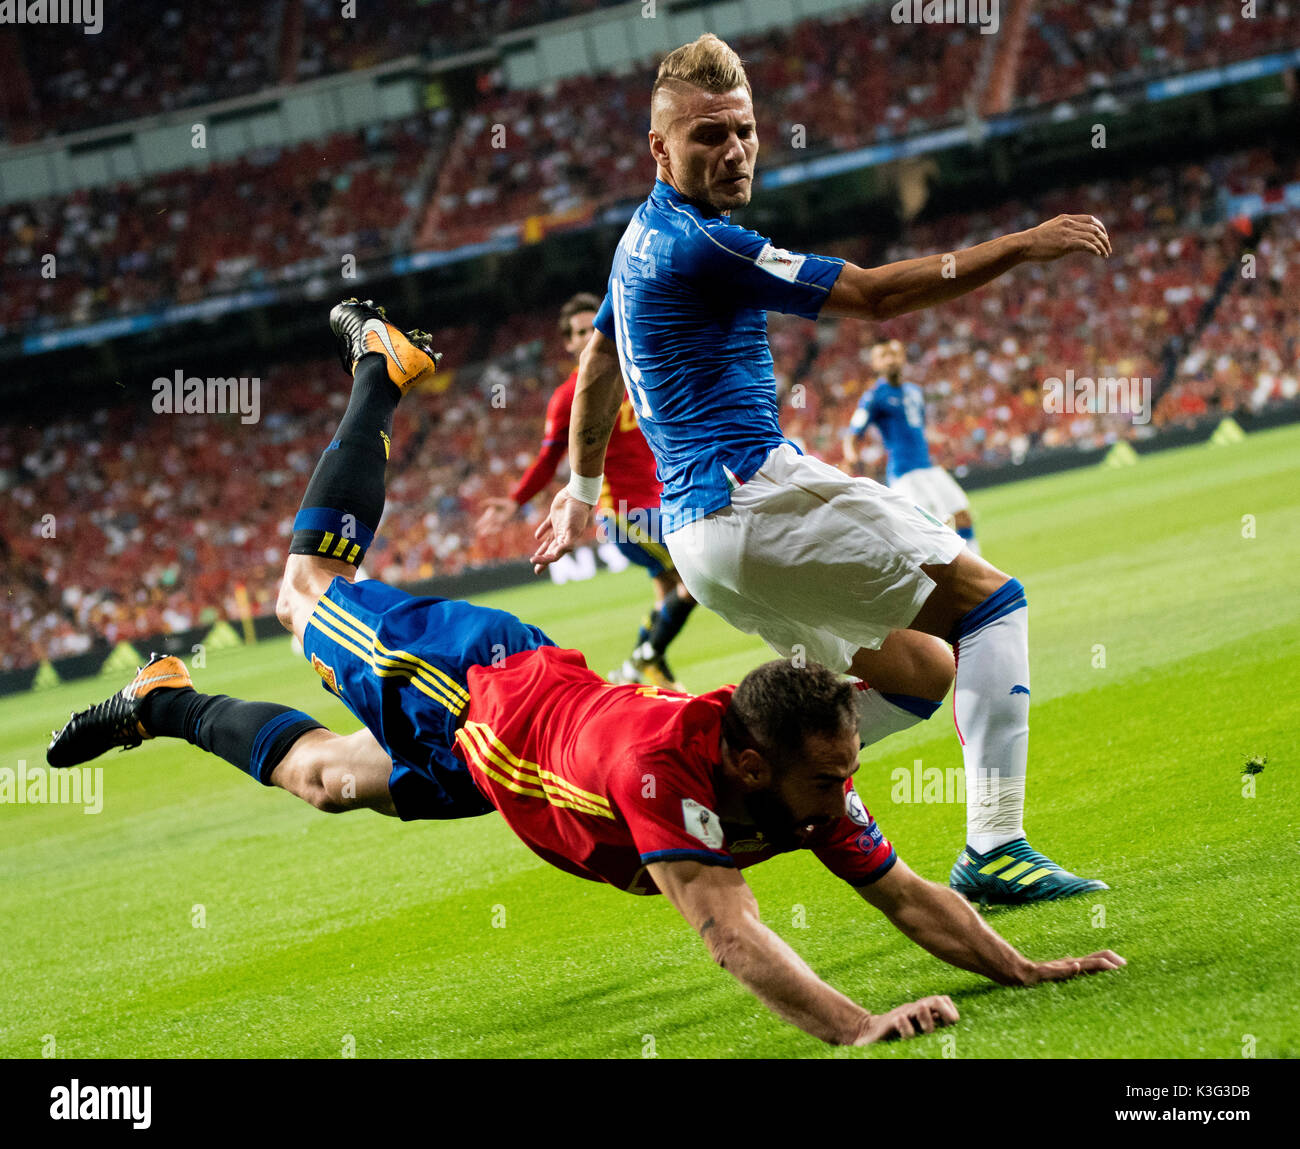 Madrid, Spain. 2nd September, 2017. Ciro Immobile (Forward, Italy) and Dani Carvajal (Defender, Spain) fight for the possession of the ball during the football match of FIFA World Cup 2018 Qualifying Round between Spain and Italy at Santiago Bernanbeu Stadium on September 2, 2017 in Madrid, Spain. ©David Gato/Alamy Live News - Stock Image